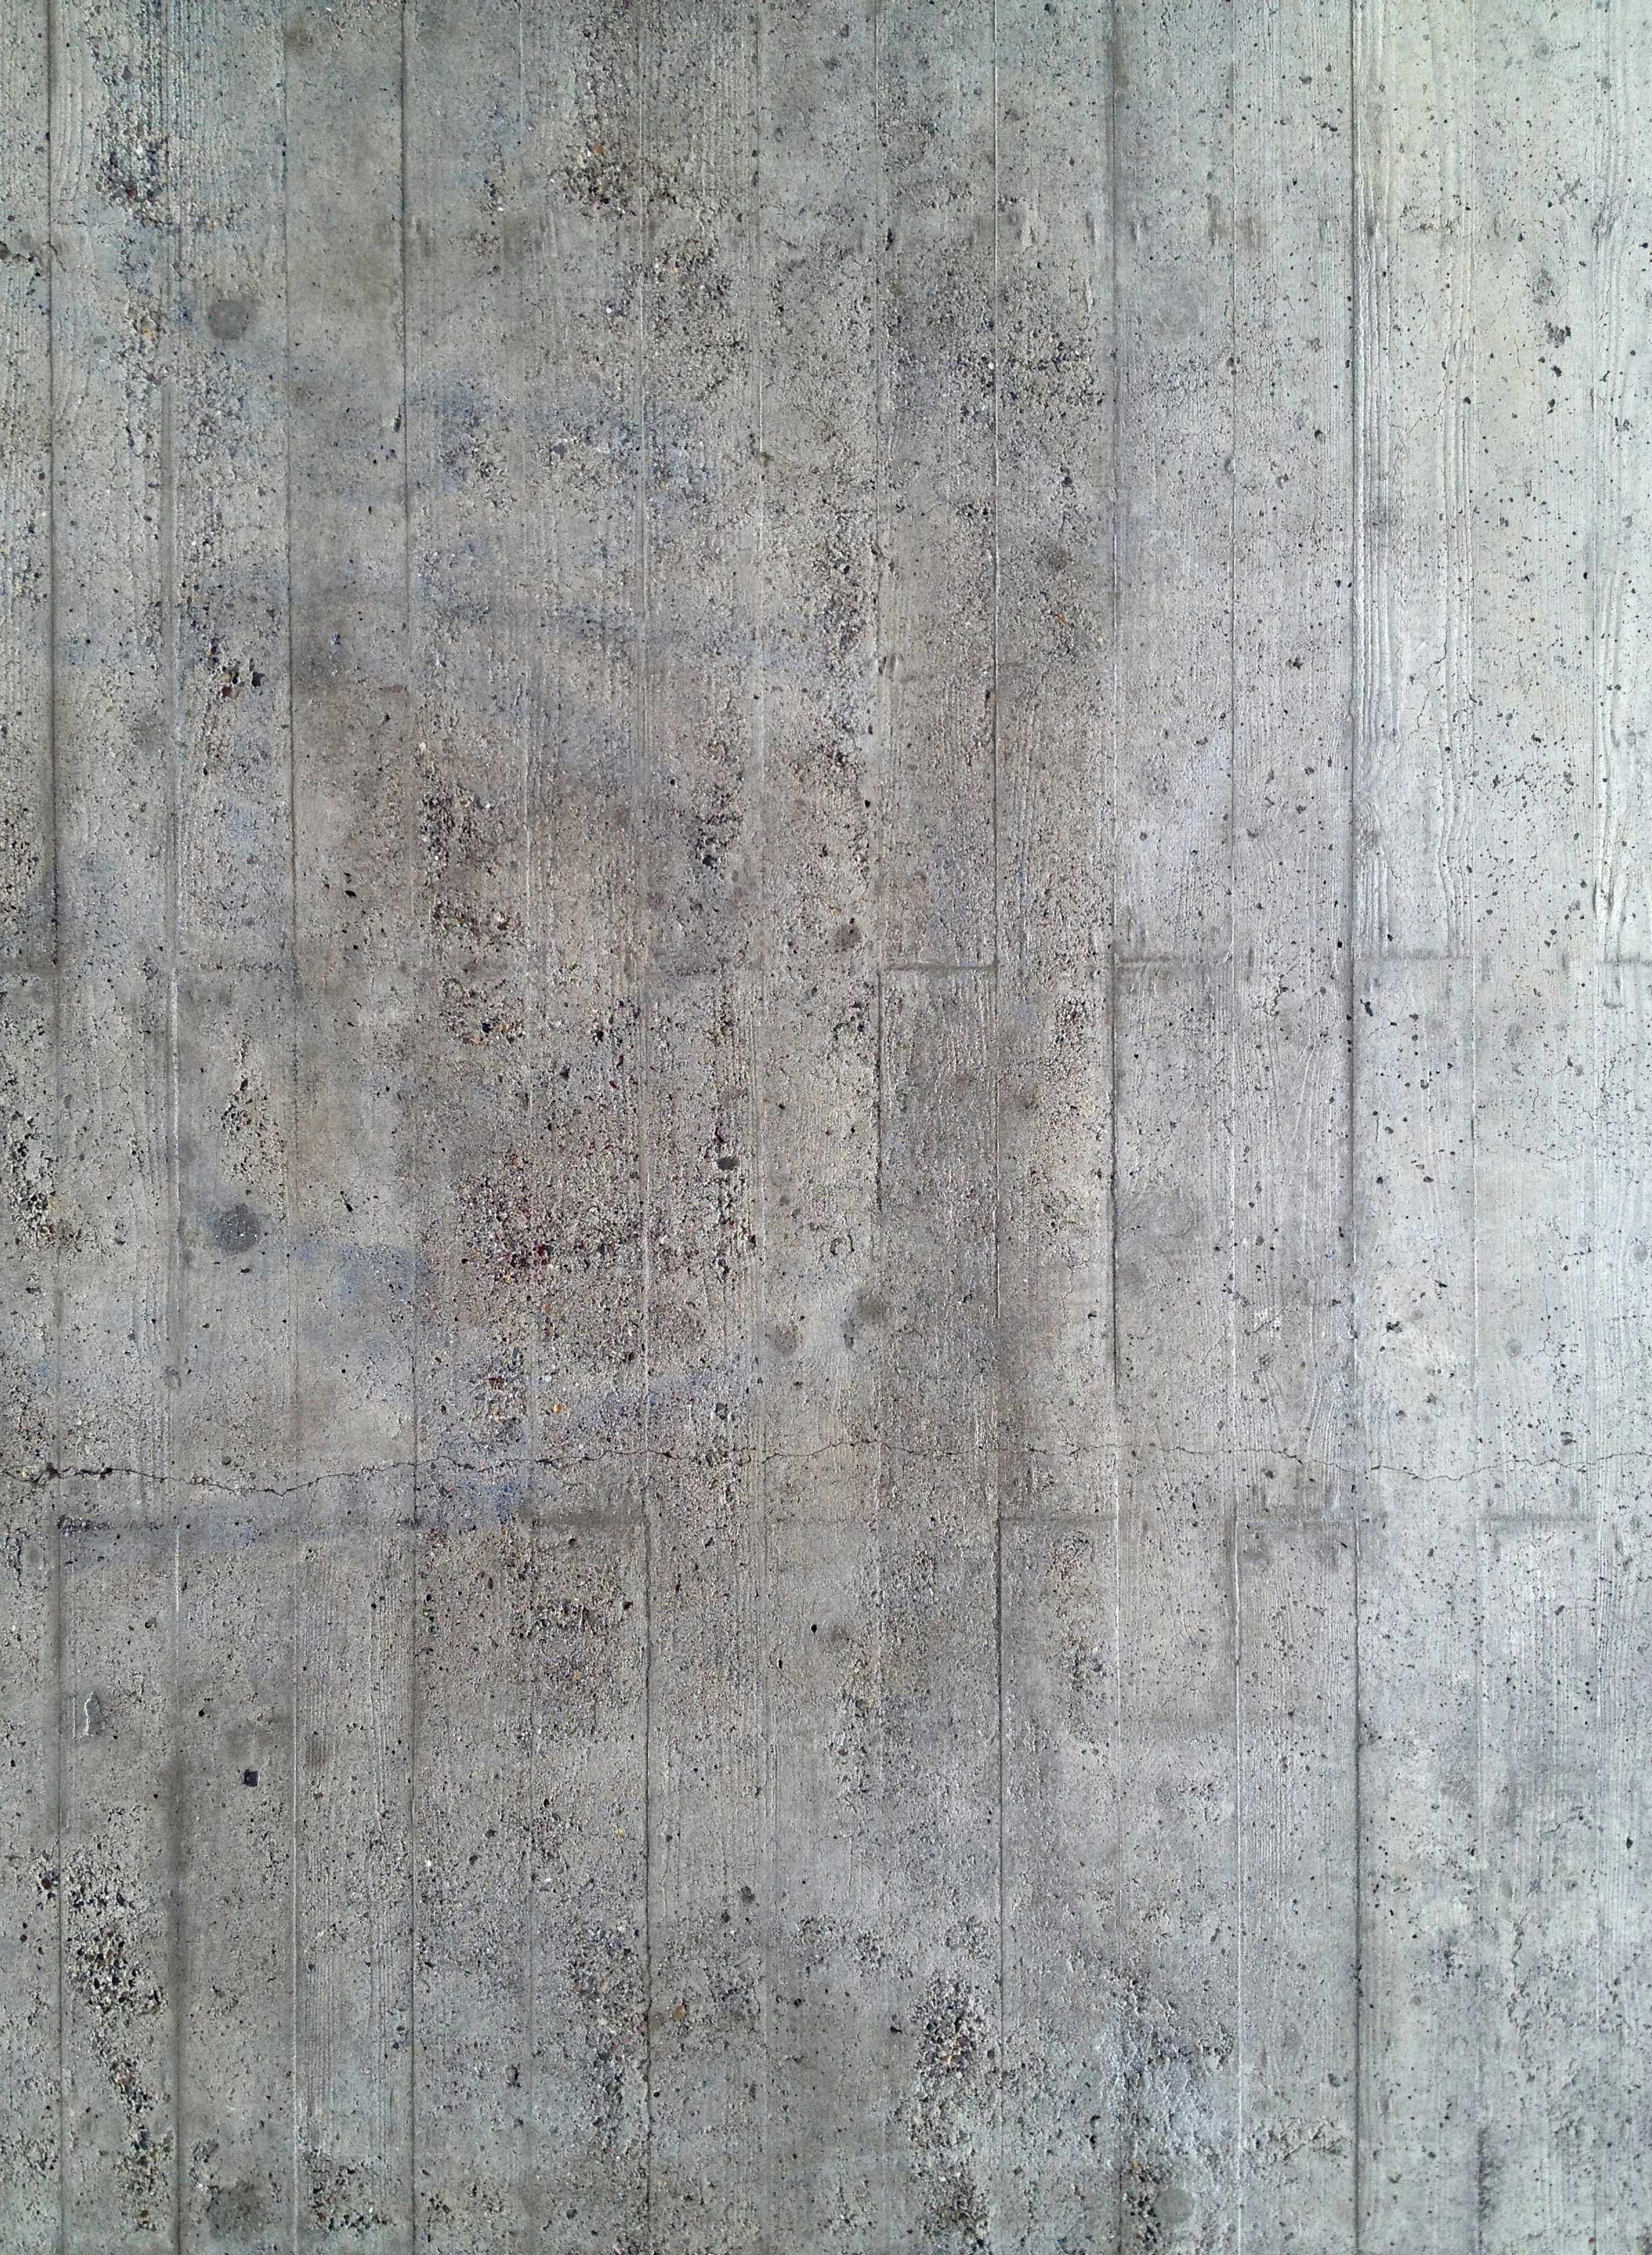 Vertical Board Form Concrete Board Formed Concrete Concrete Texture Concrete Wall